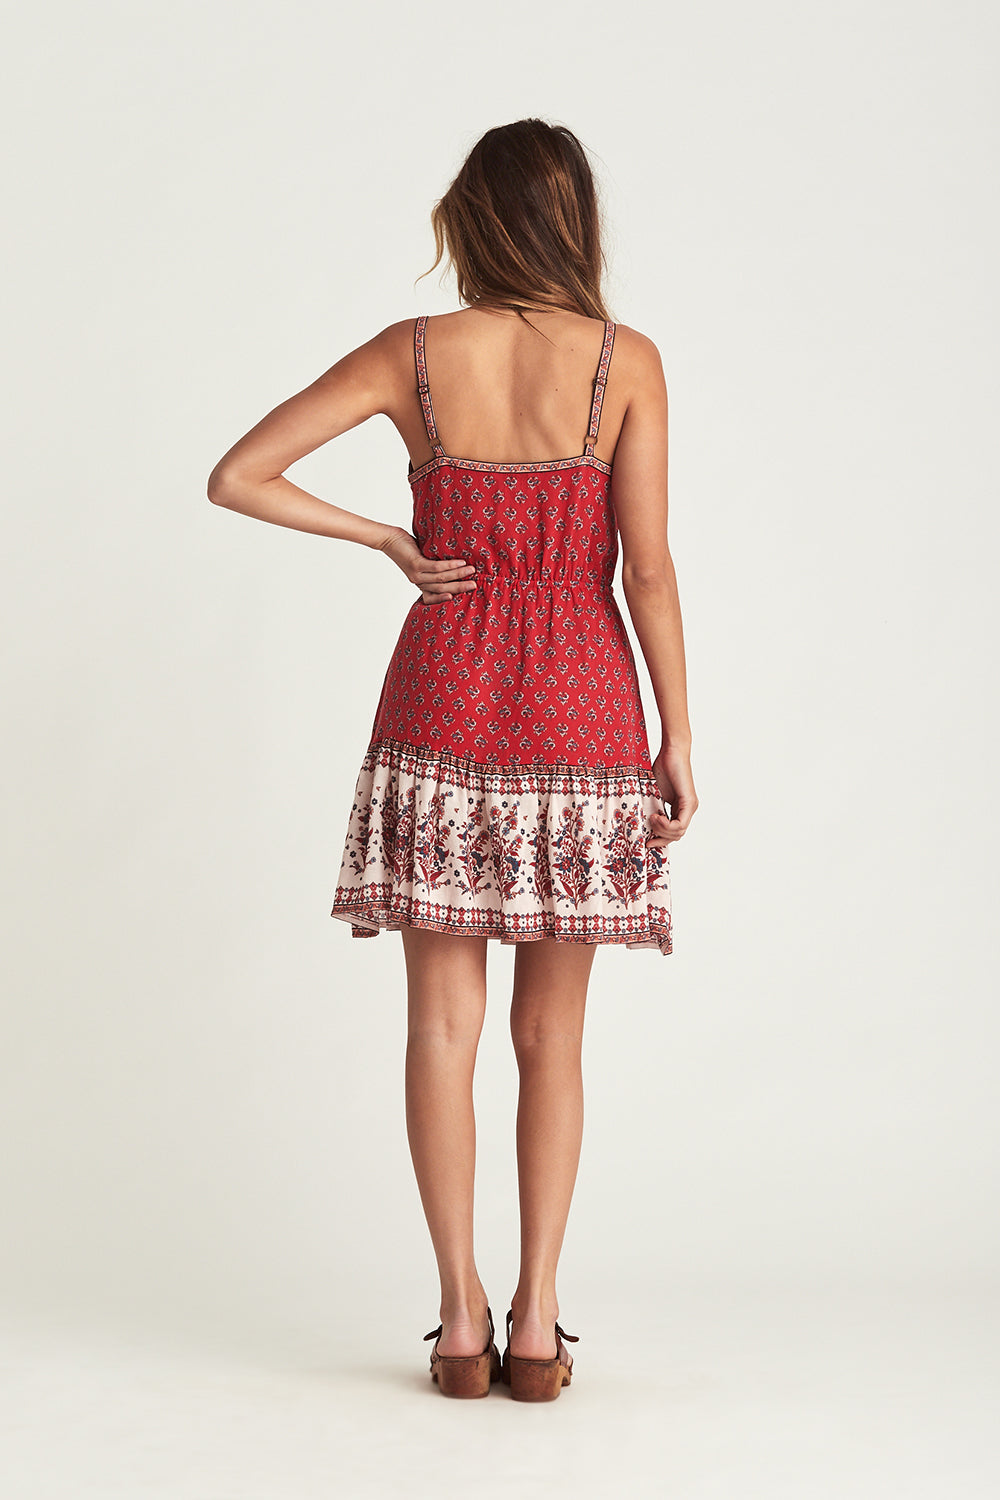 Serafina Mini Dress in Crimson Skies